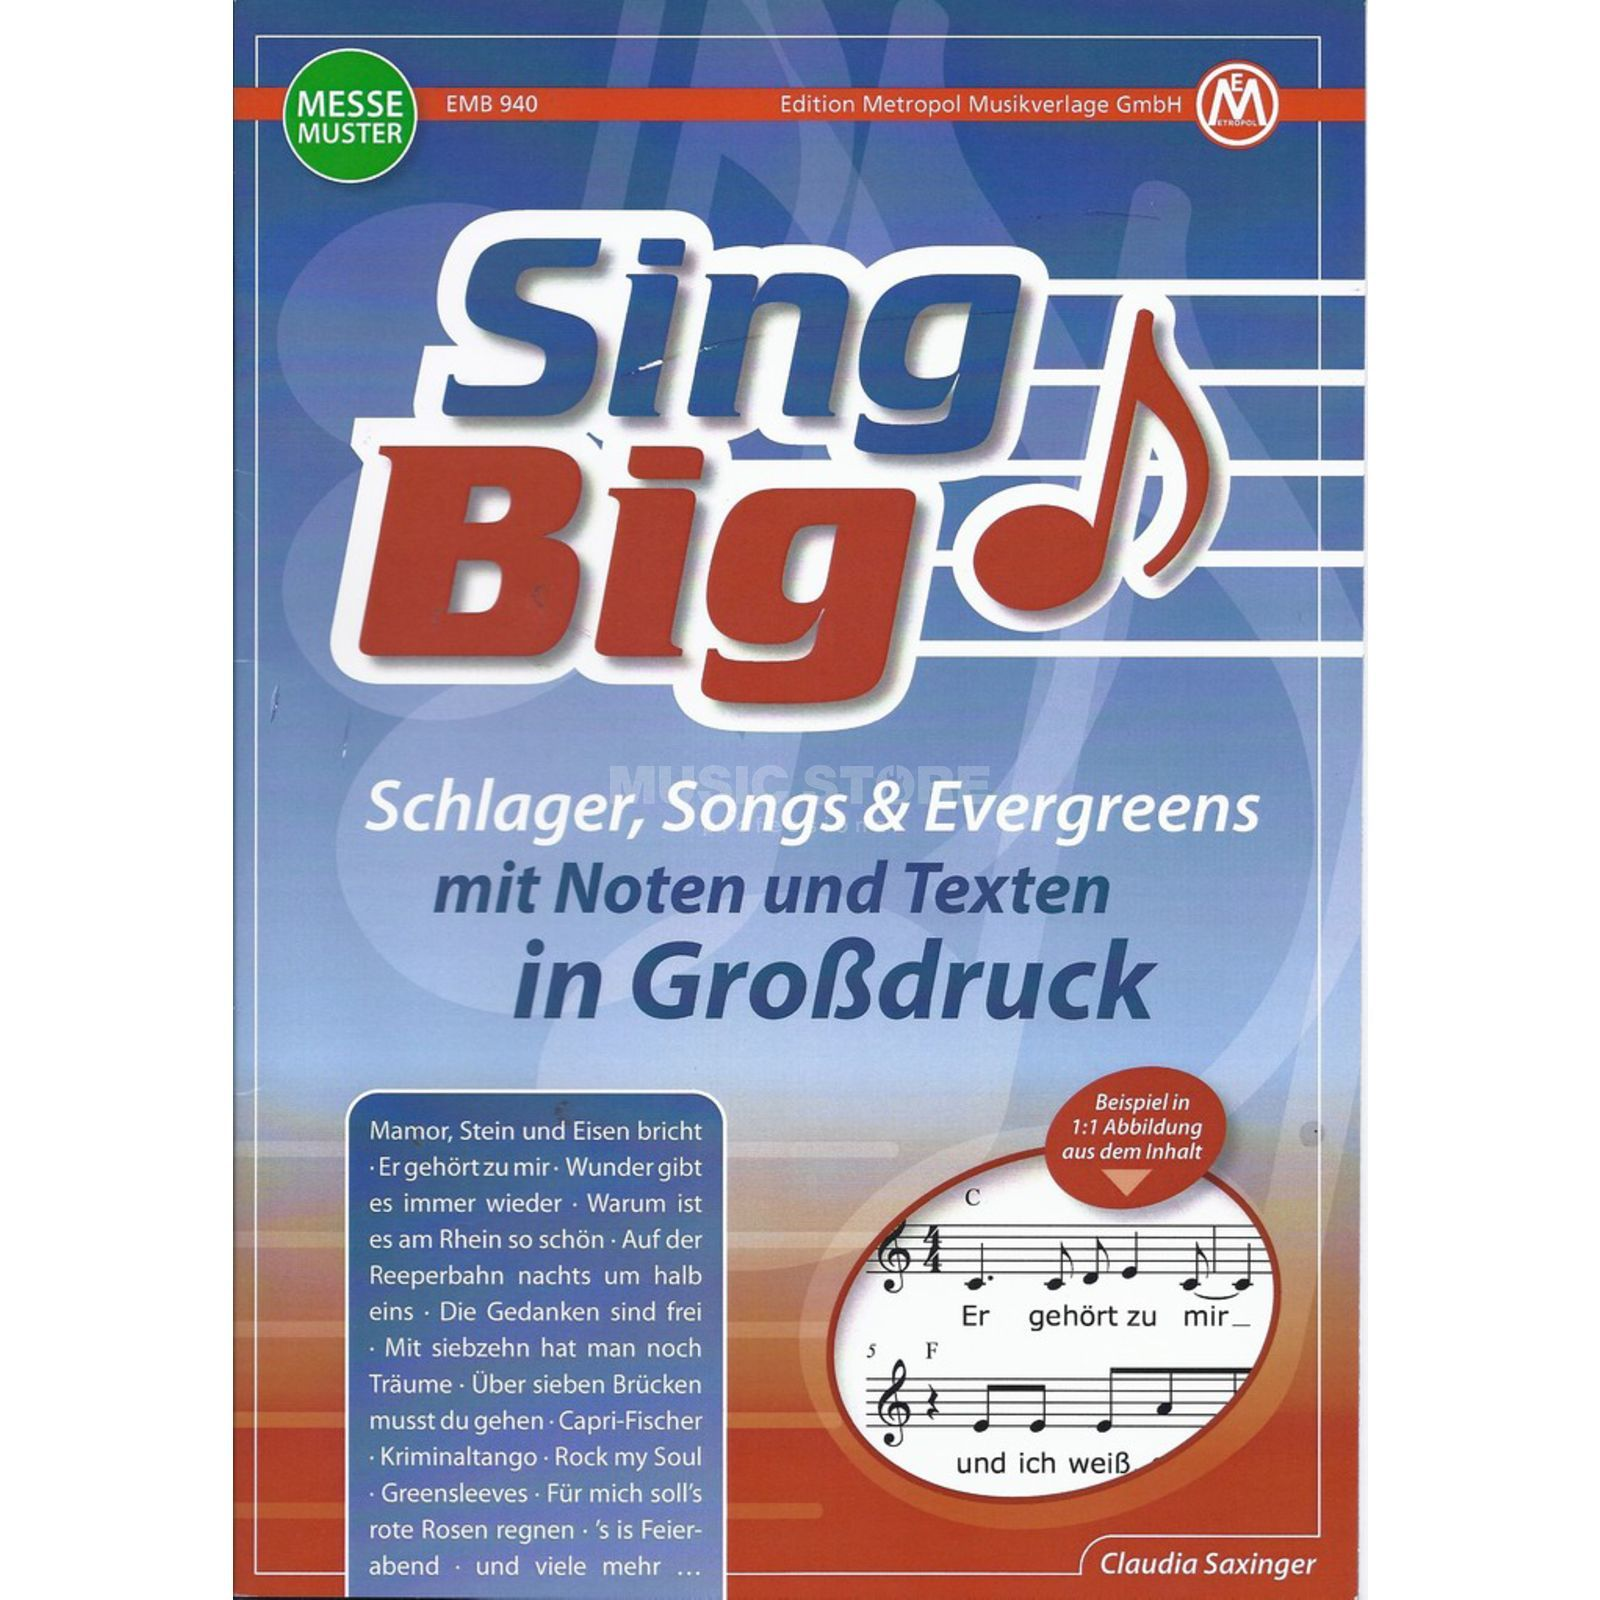 Edition Metropol Sing Big - Schlager, Songs & Evergreens im Großdruck Produktbild